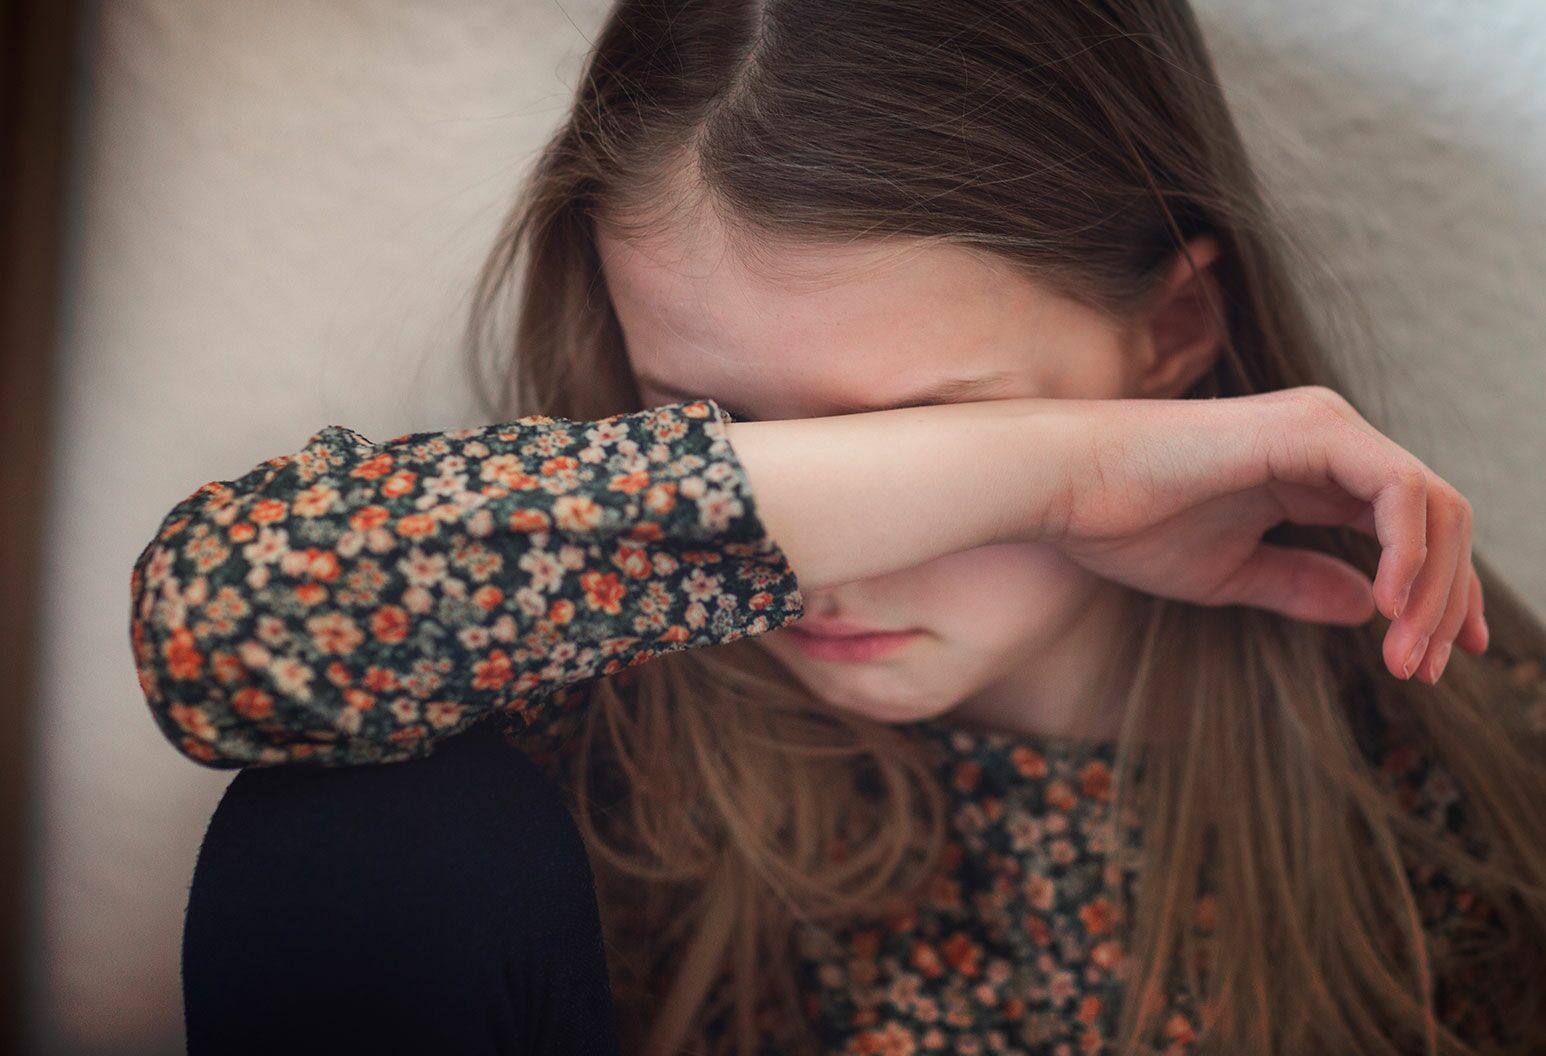 A young girl in a floral blouse and black pants sits against the wall wiping her face with her forearm.